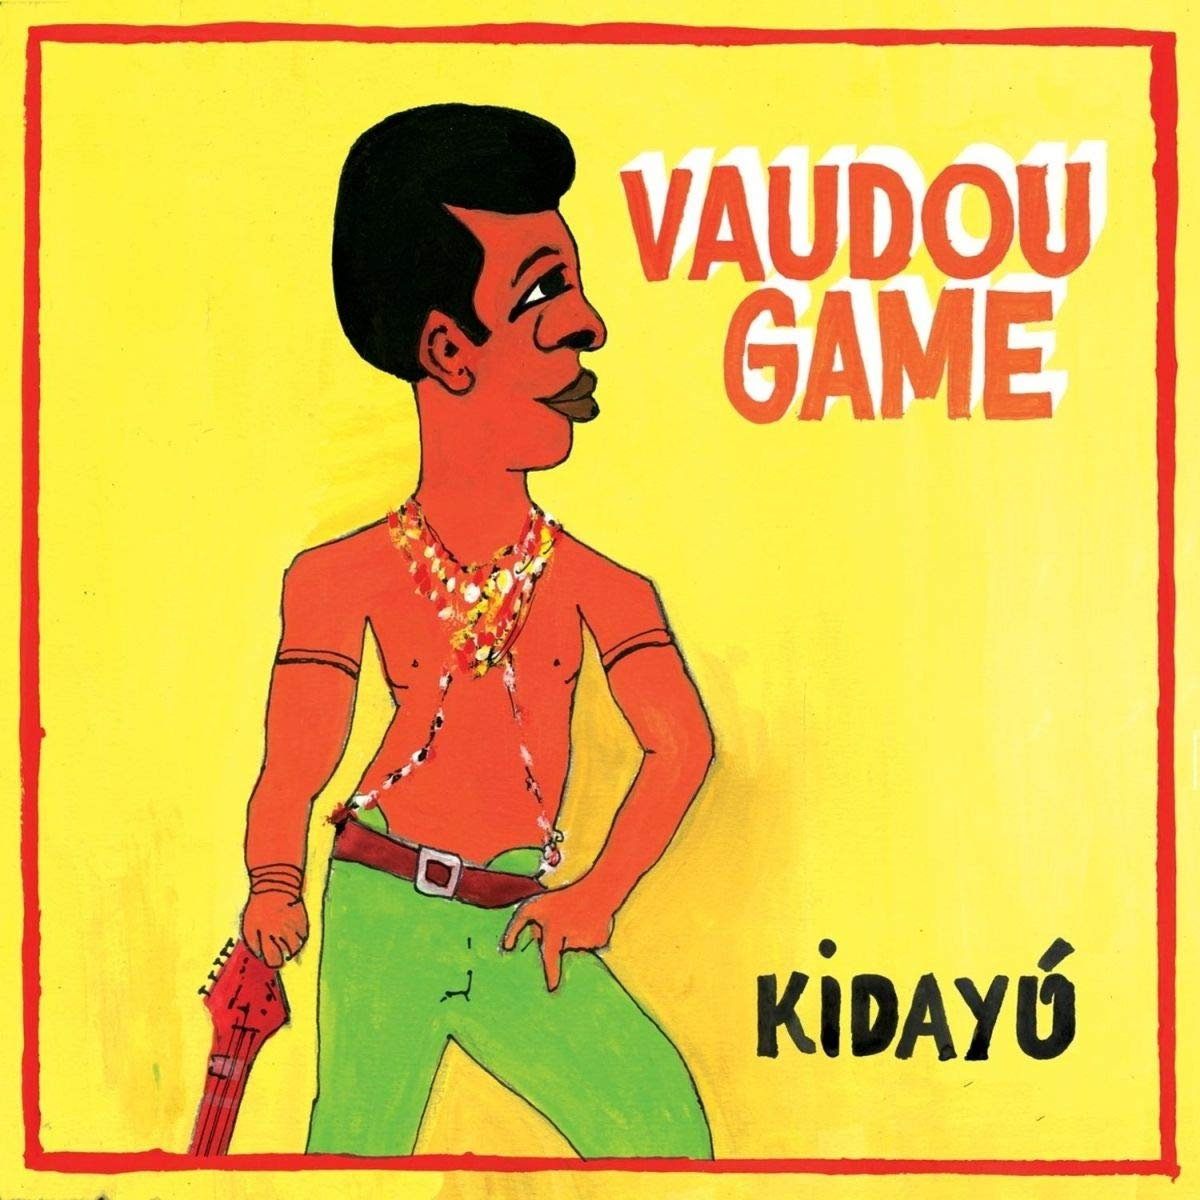 """Vaudou Game Kidayu LP: Vaudou Game """"Kidayu"""" Lp, Vaudou Game ..."""